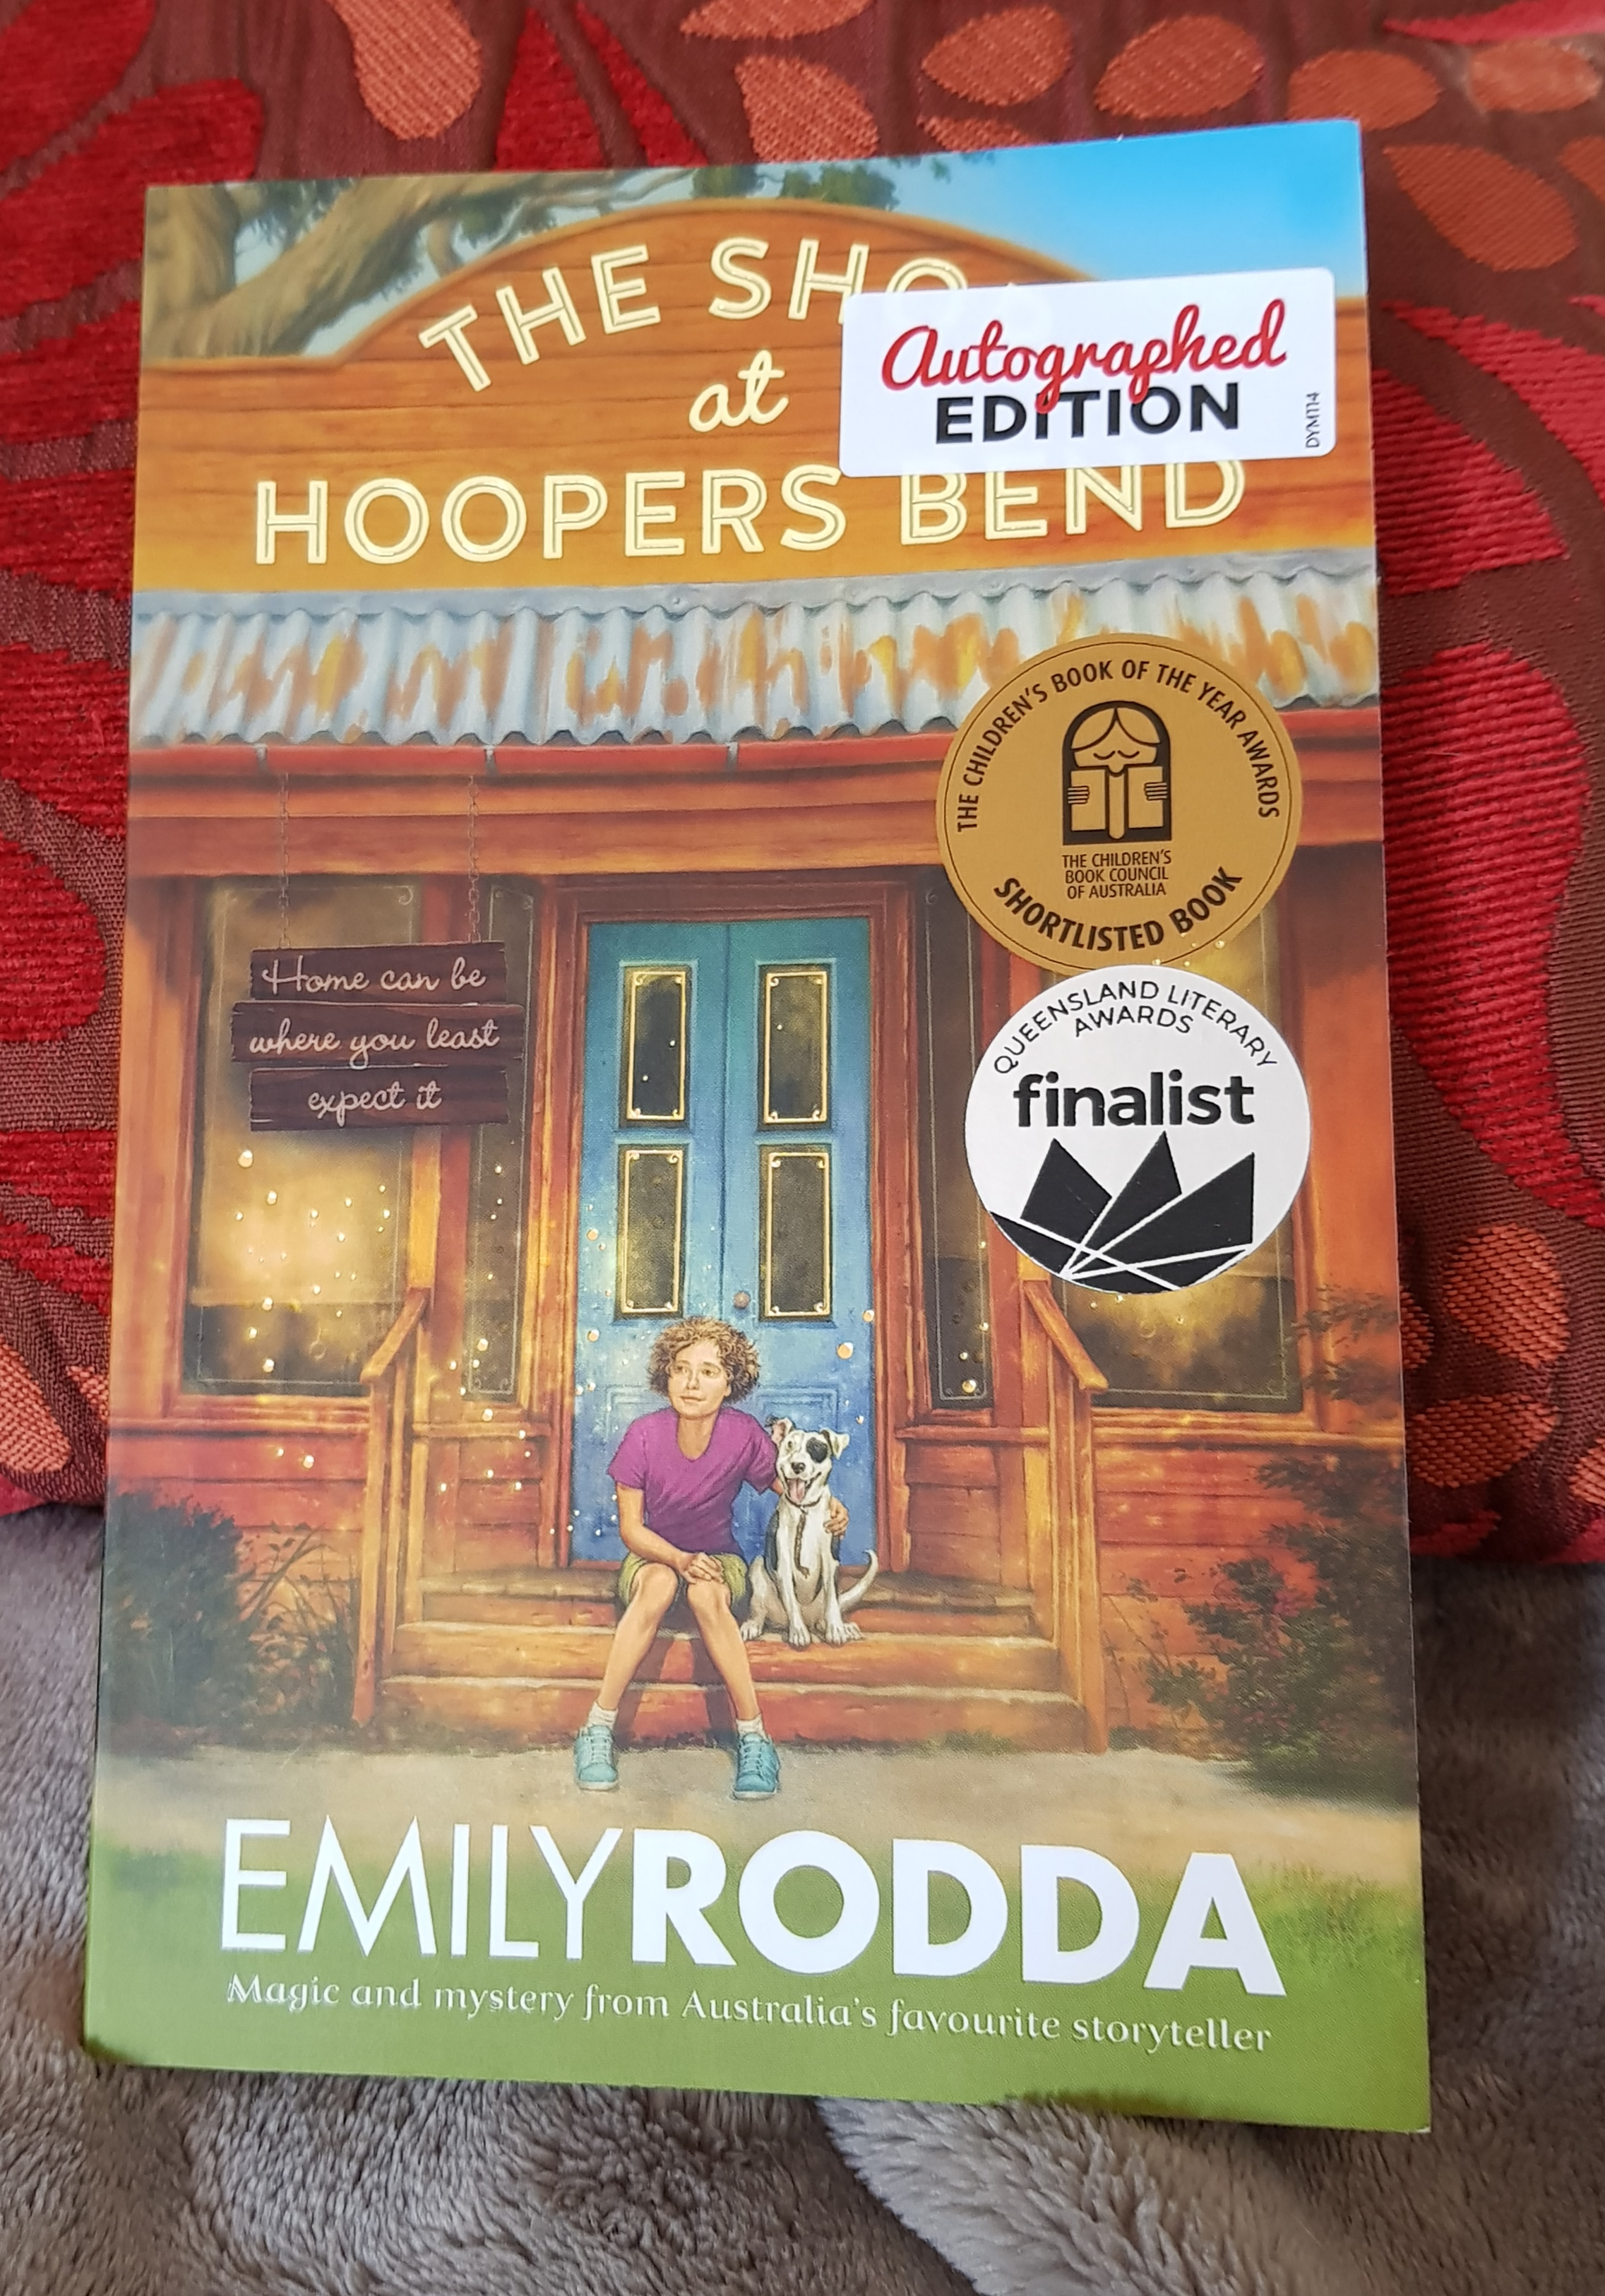 The latest awesome MG novel by Emily Rodda.